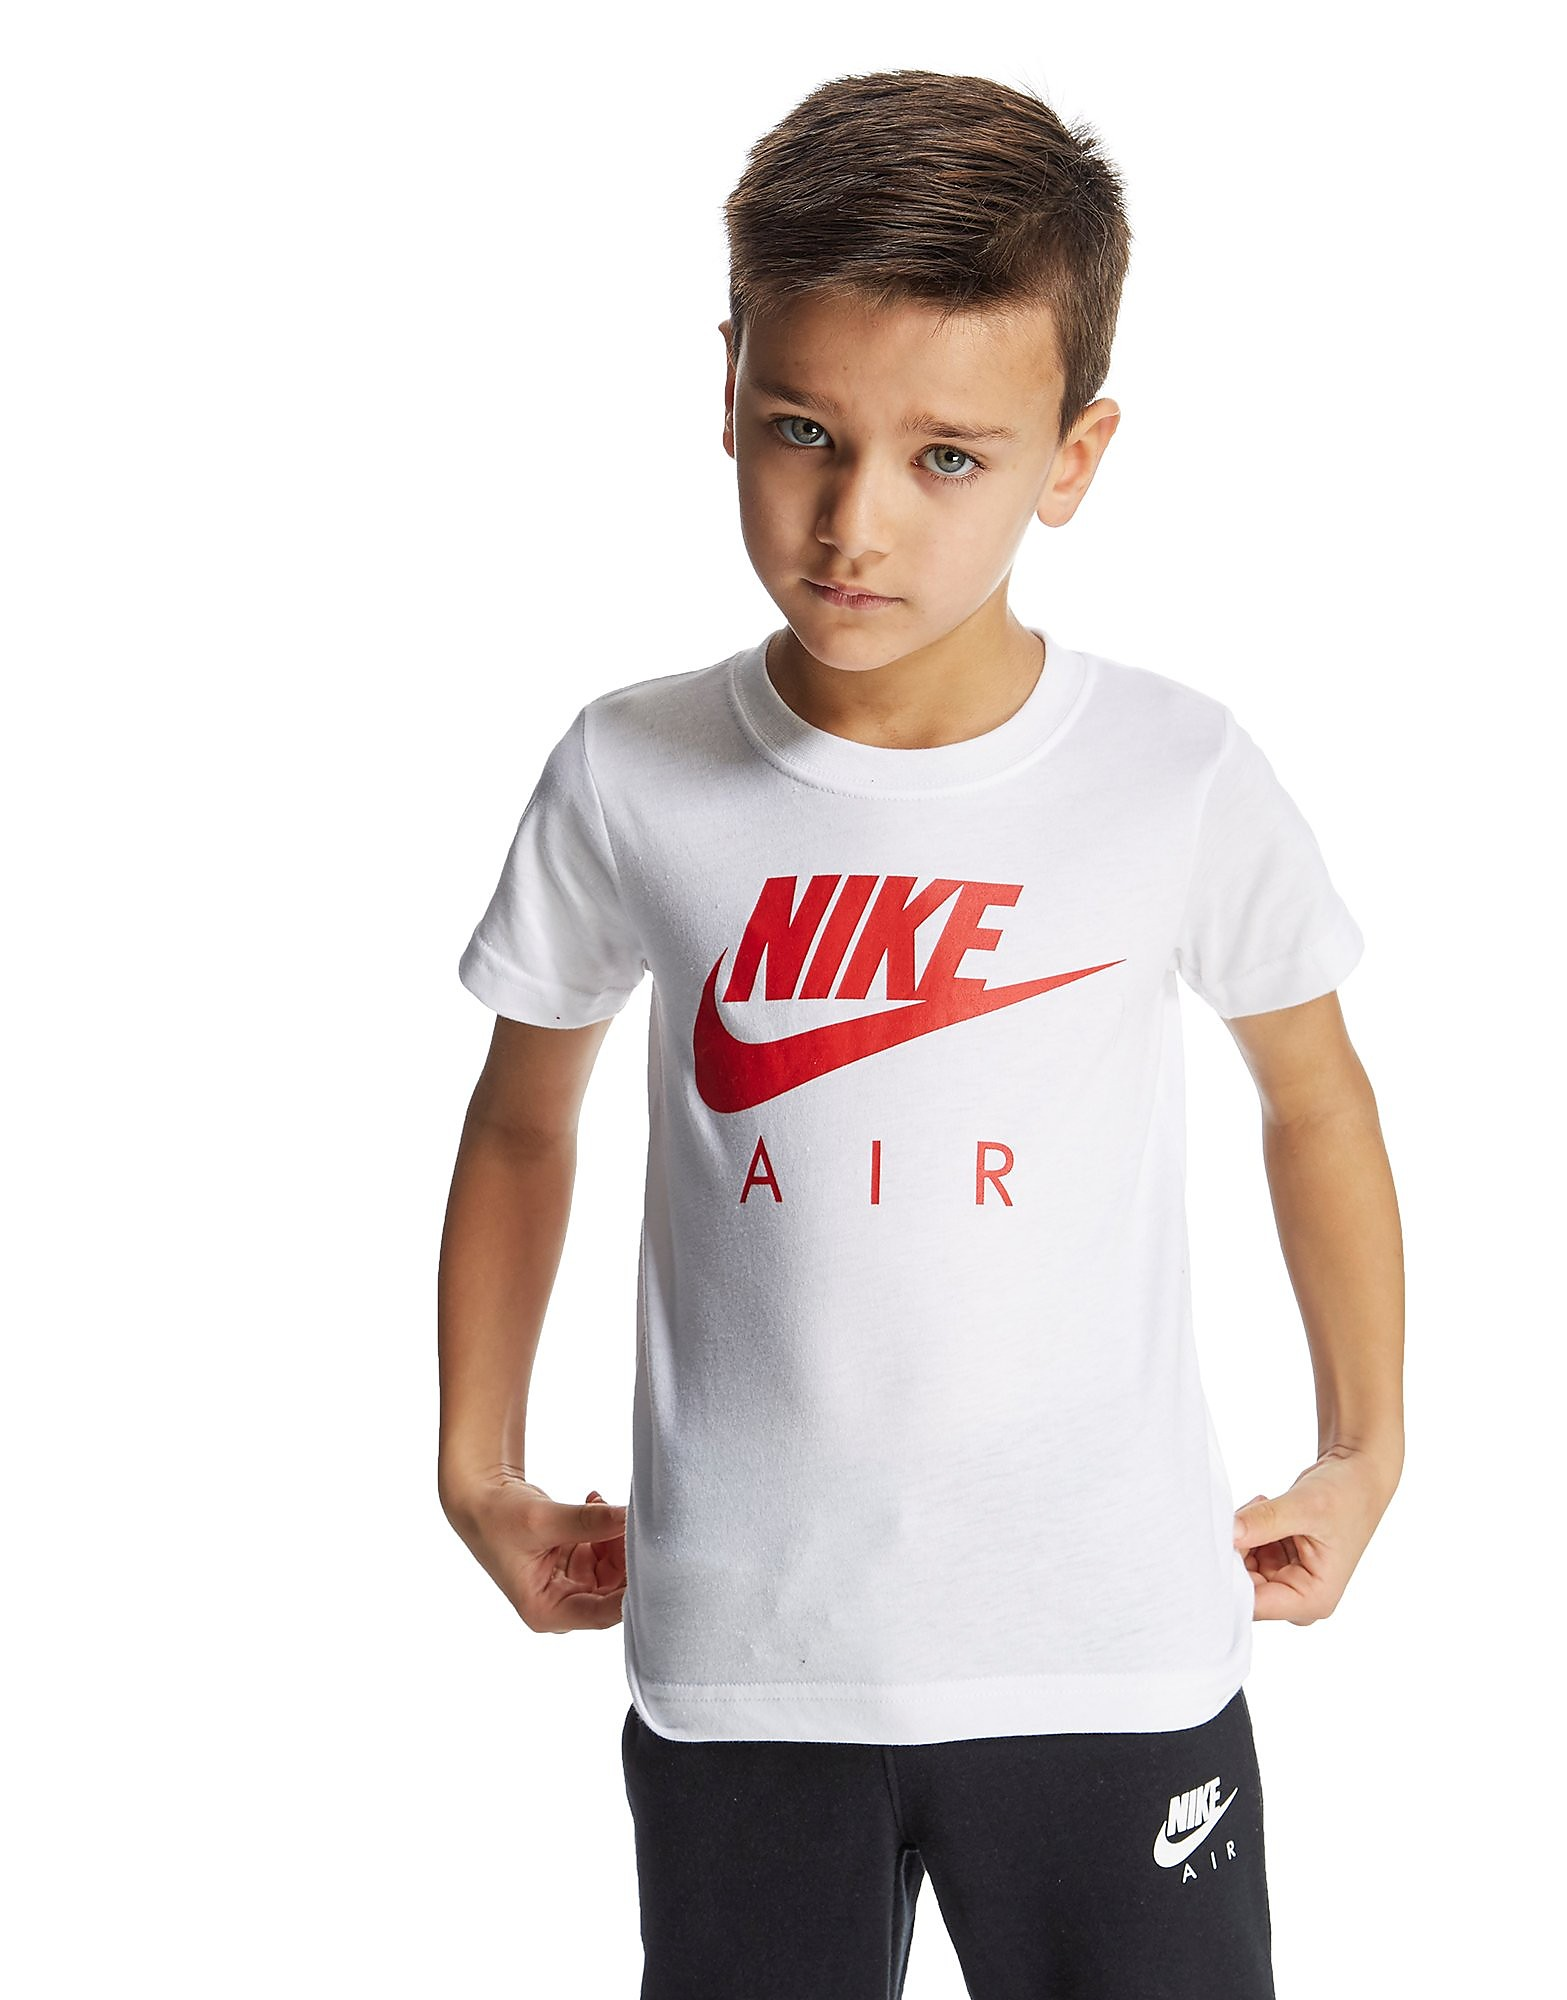 Nike Air Logo T-Shirt Children